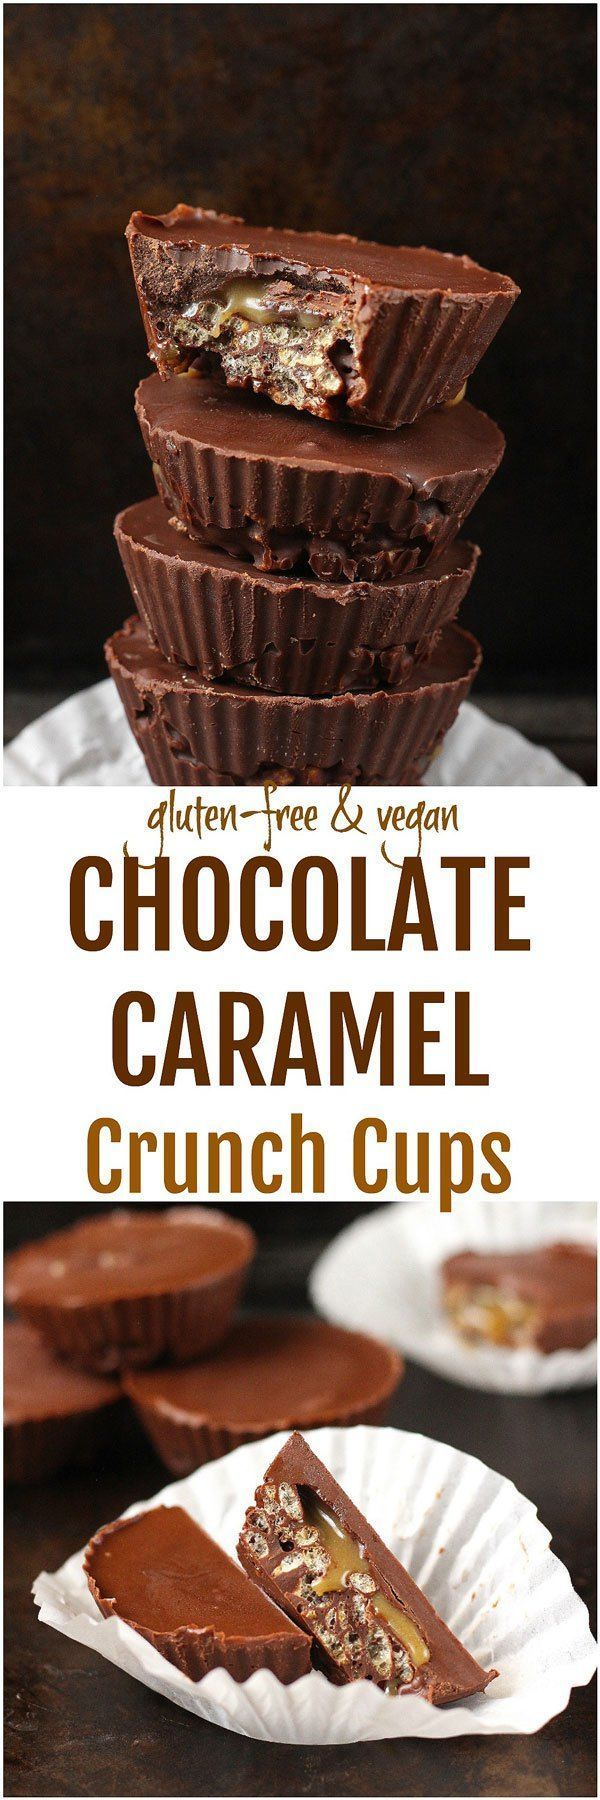 Chocolate Caramel Crunch Cups [Vegan / GF] - These gluten-free and vegan Chocolate Caramel Crunch Cups are a no-bake sweet treat that combines the delicious crunch of brown rice crisps with a sweet, creamy homemade caramel sauce!